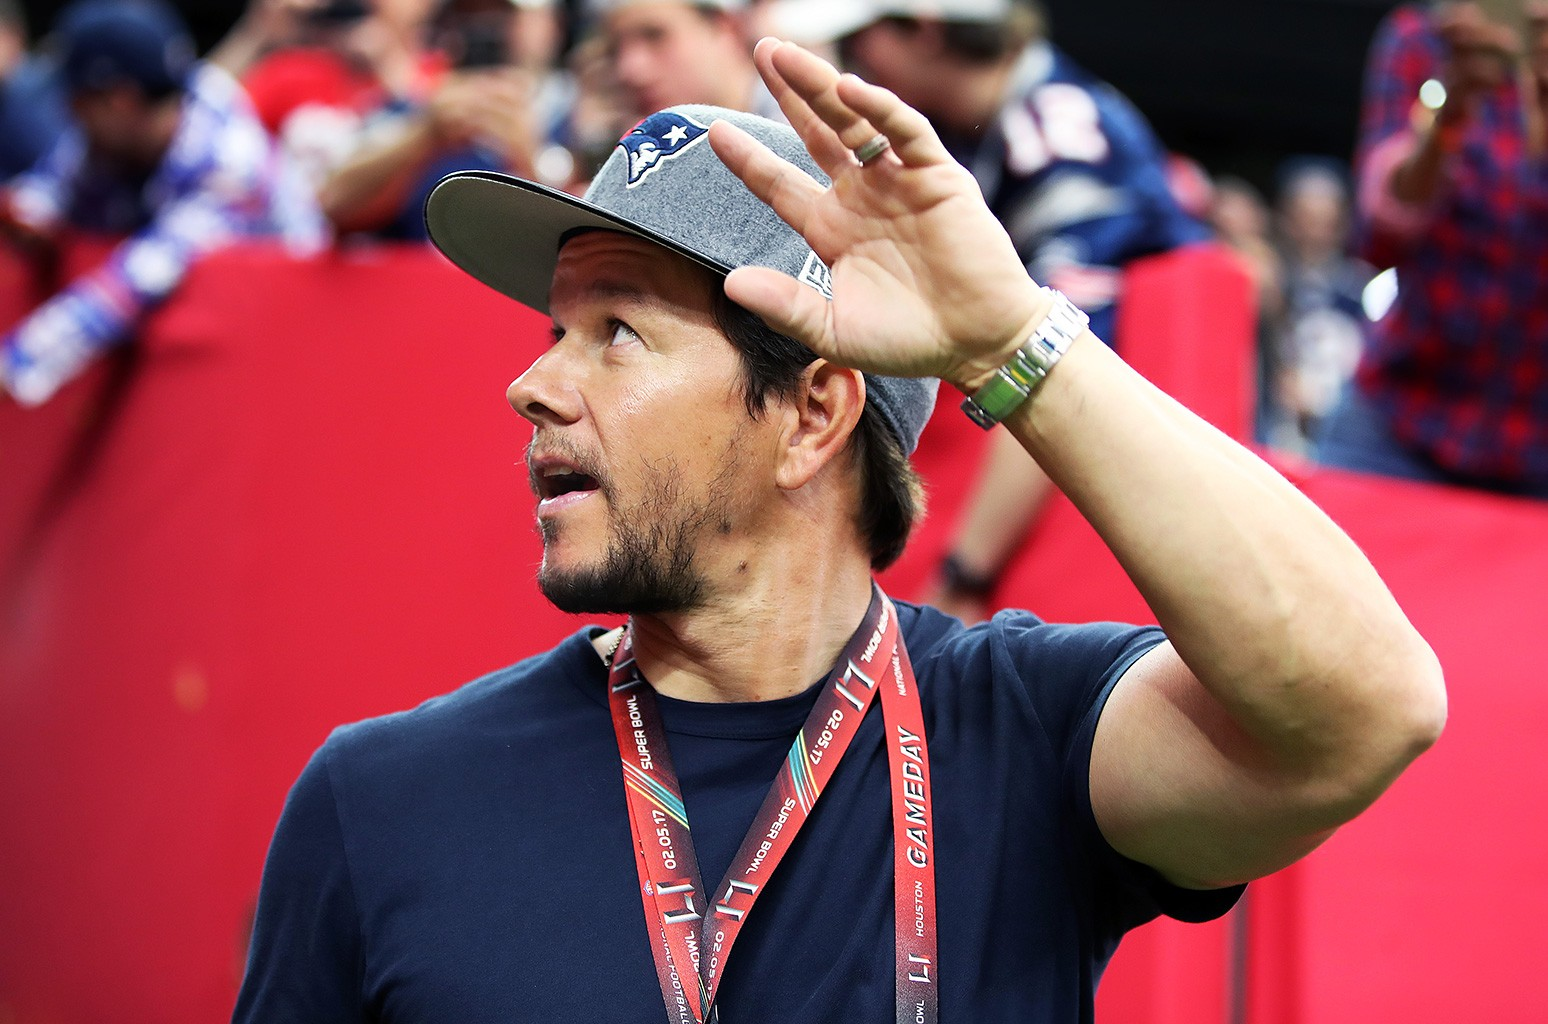 Mark Wahlberg waves to fans who are calling his name as he walks onto the field during pre game warm ups. The Atlanta Falcons play the New England Patriots in Super Bowl LI at NRG Stadium in Houston on Feb 5, 2017.